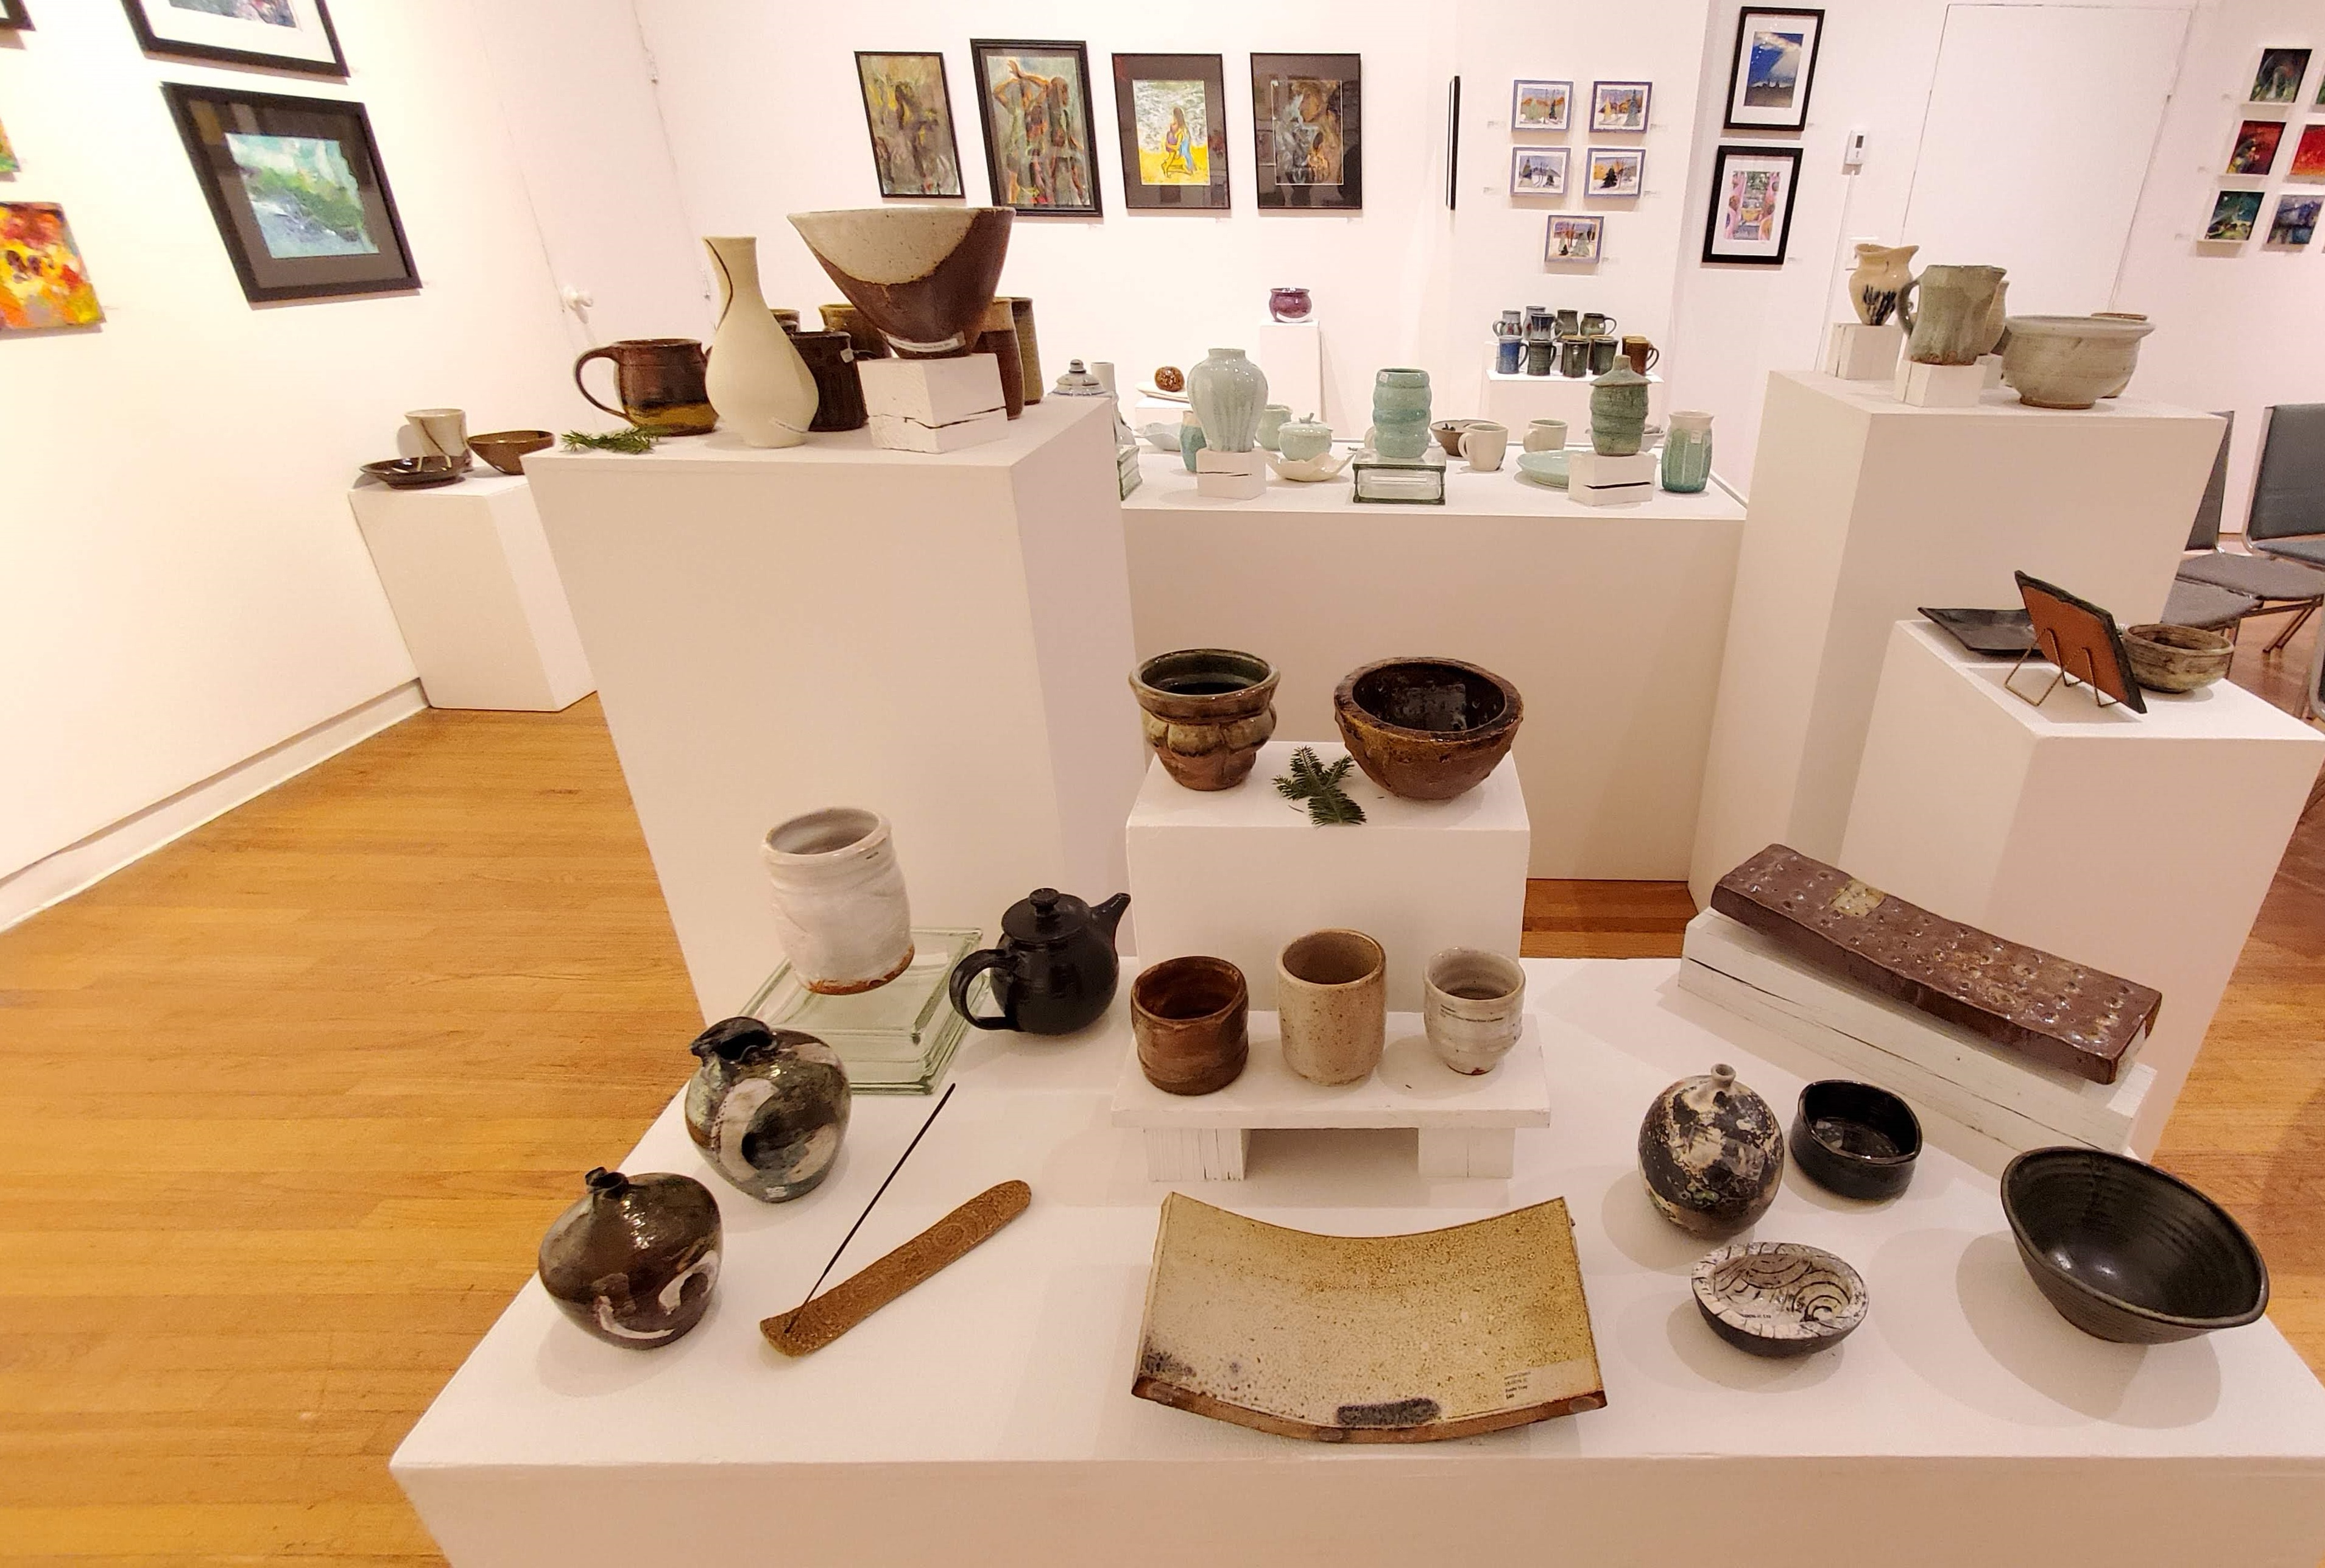 Rockland Center for the Arts Hosts Pottery Bazaar Through December